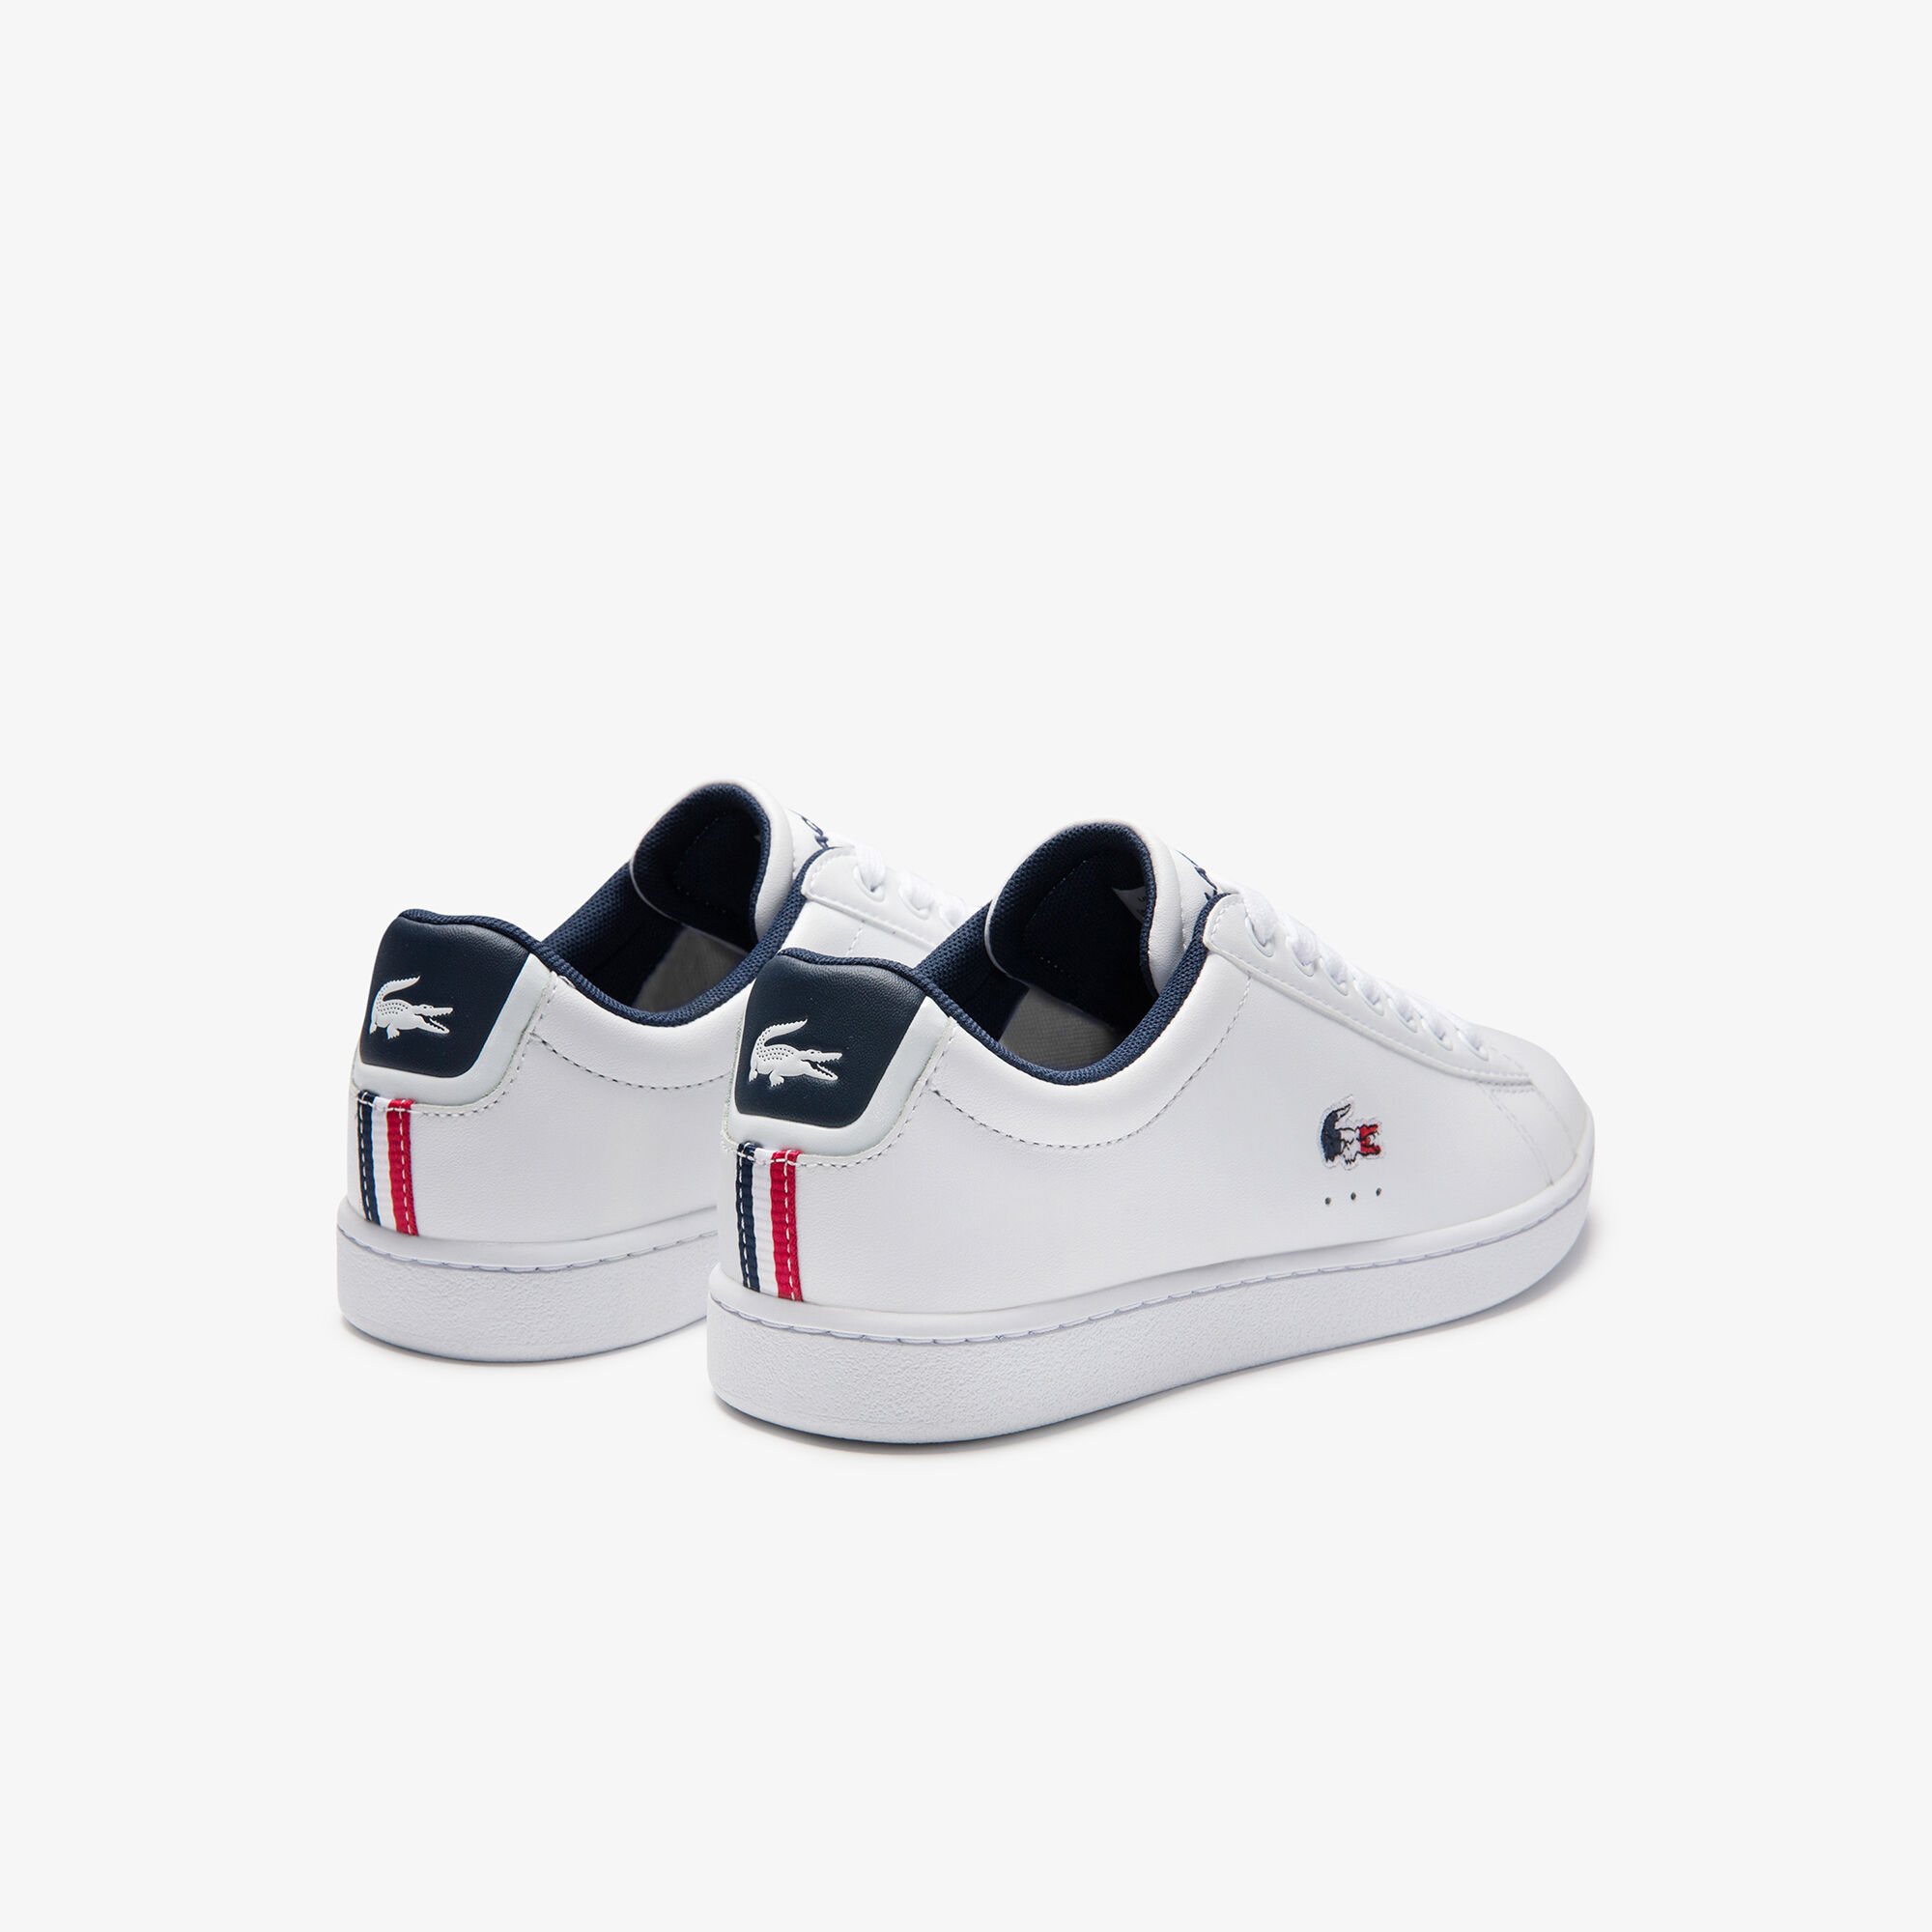 Women's Carnaby Evo Tricolore Leather and Synthetic Trainers